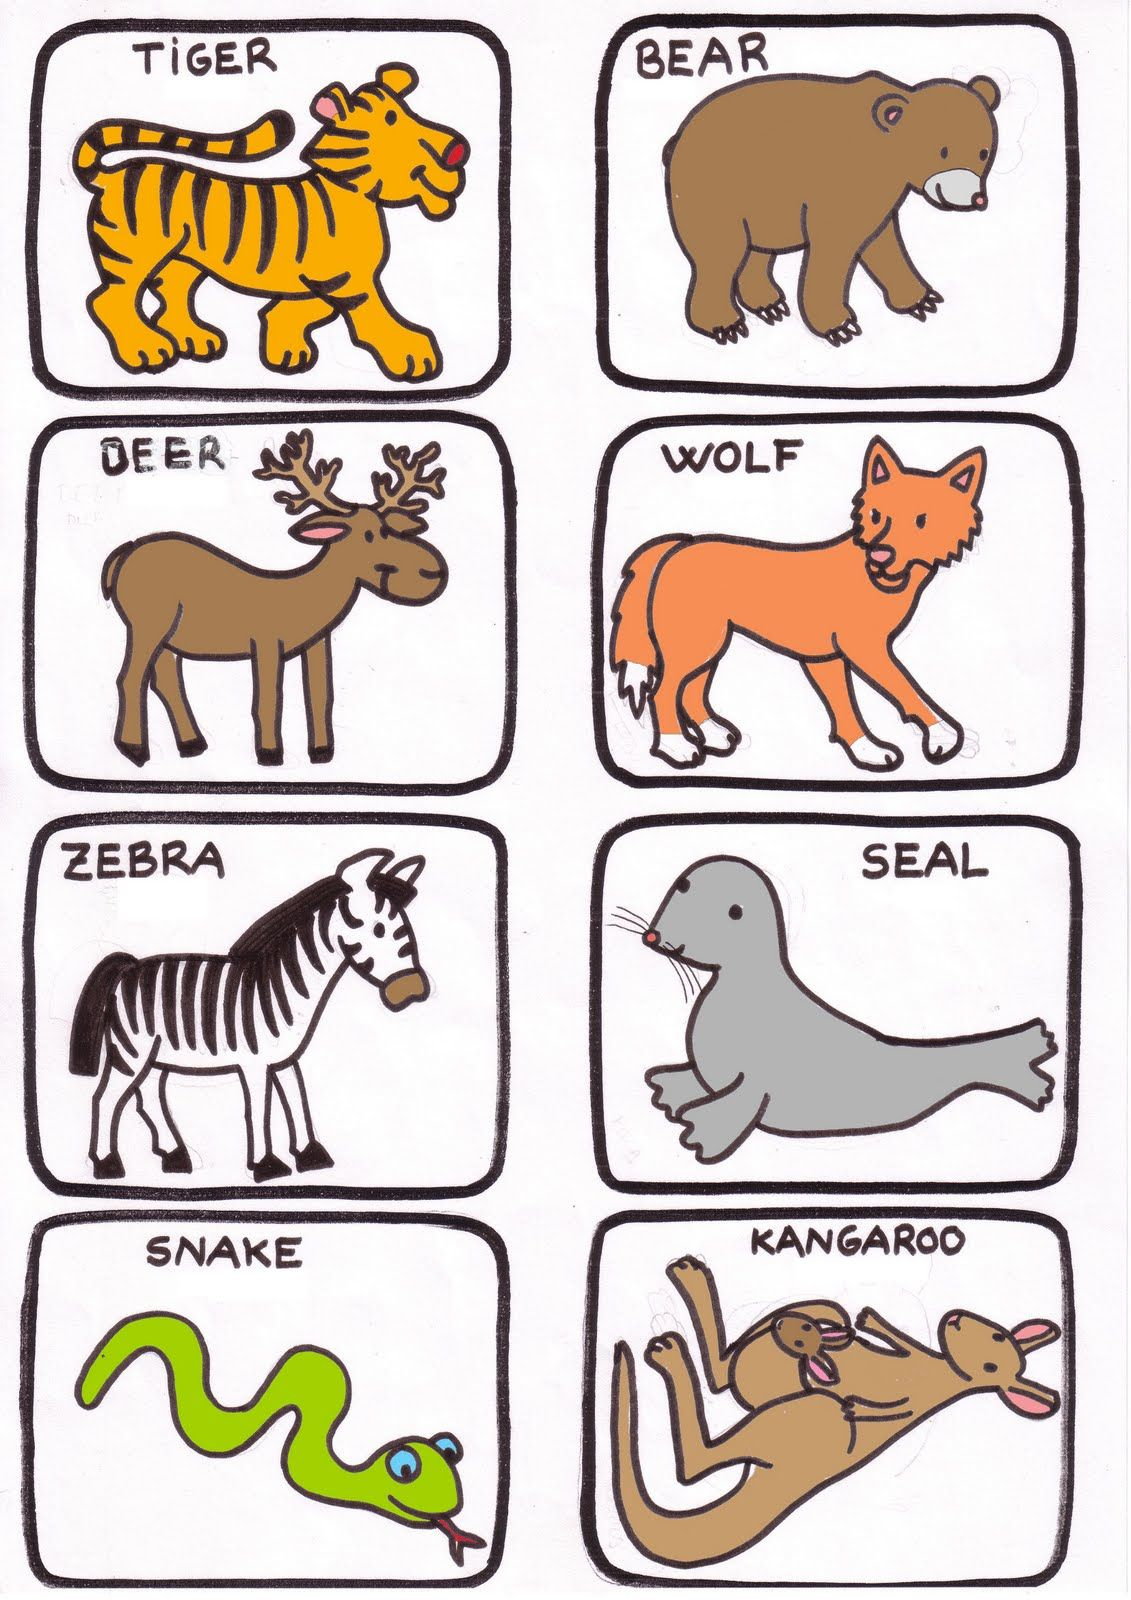 Animales Salvajes En Ingles